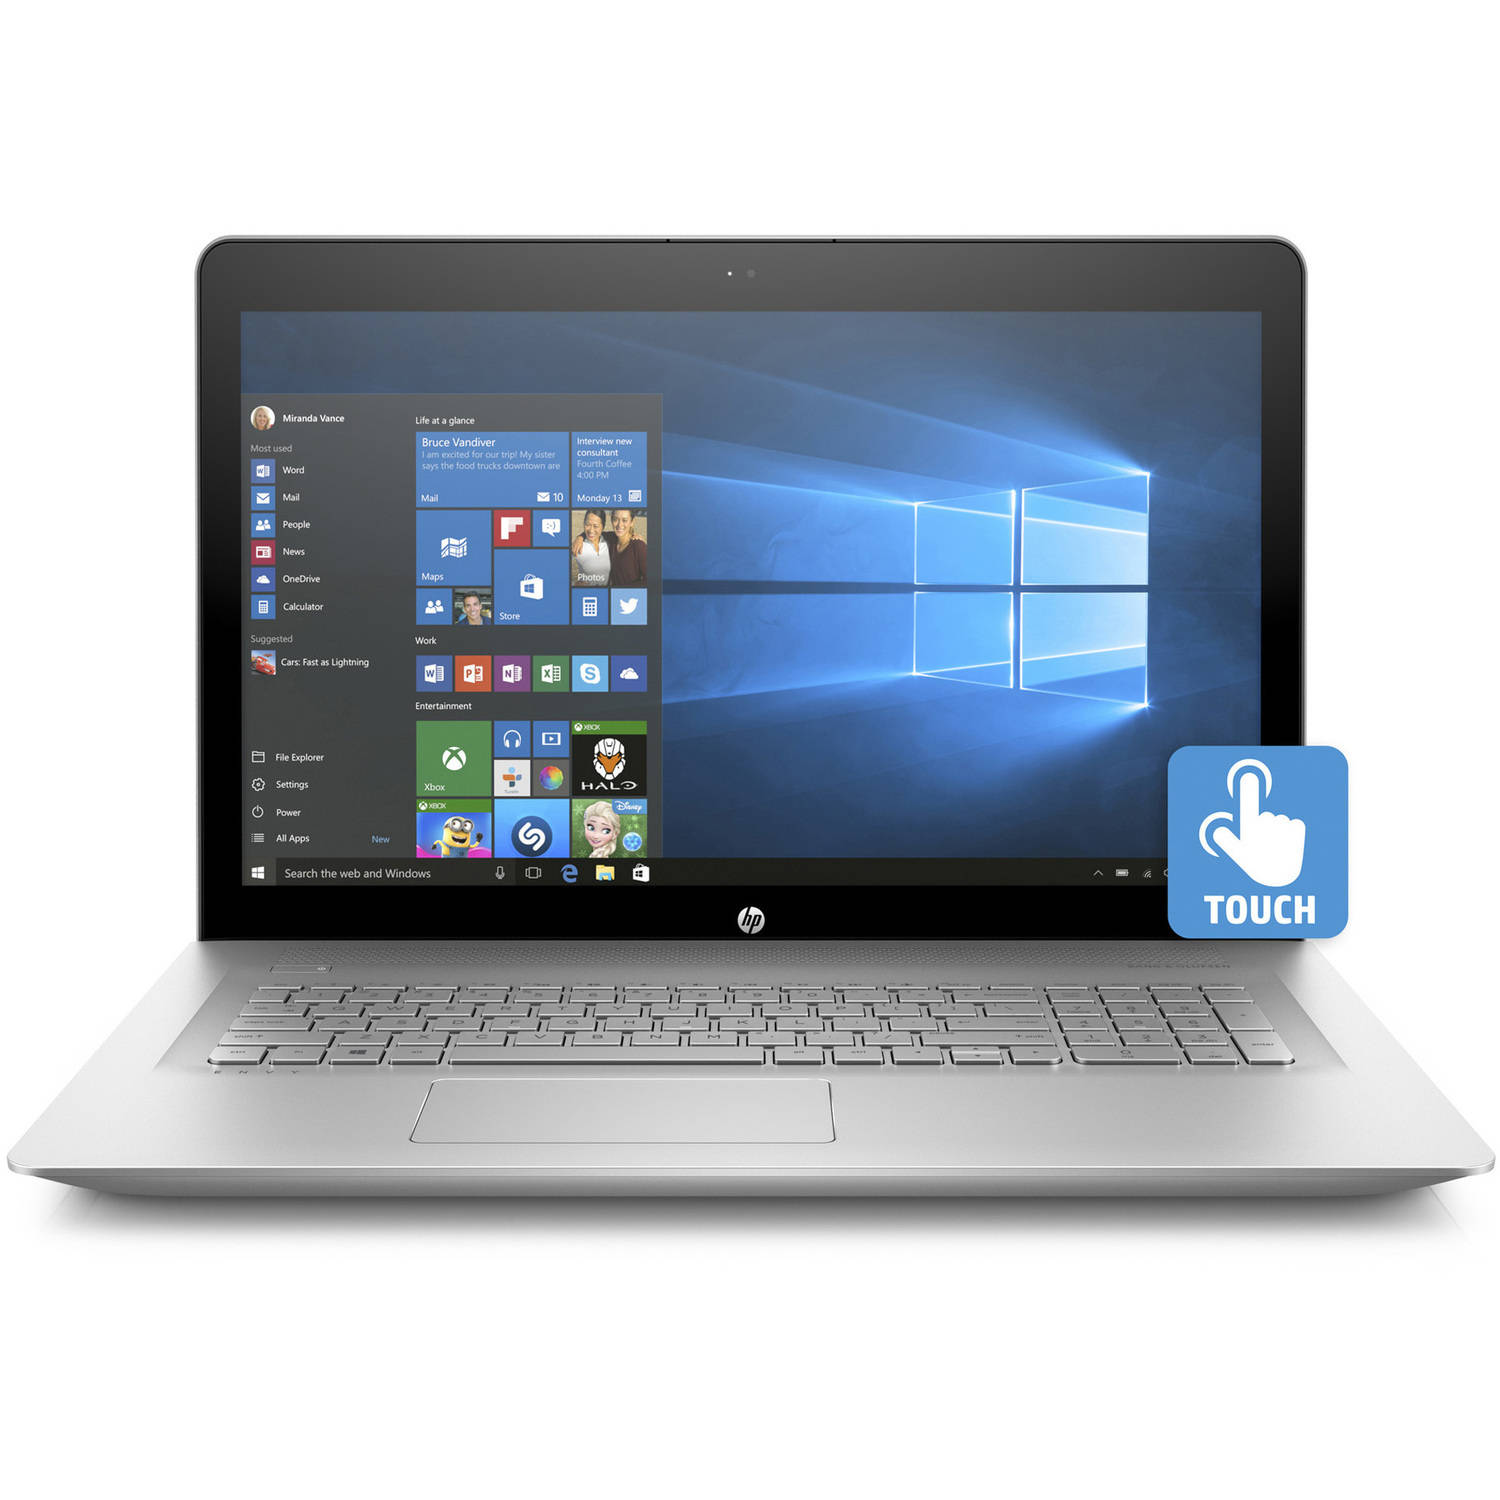 "HP Envy 17-U110Nr 17.3"" Laptop, Touchscreen, Windows 10 Home, Intel Core i7-7500U Dual-Core Processor, 12GB RAM, 1TB Hard Drive"